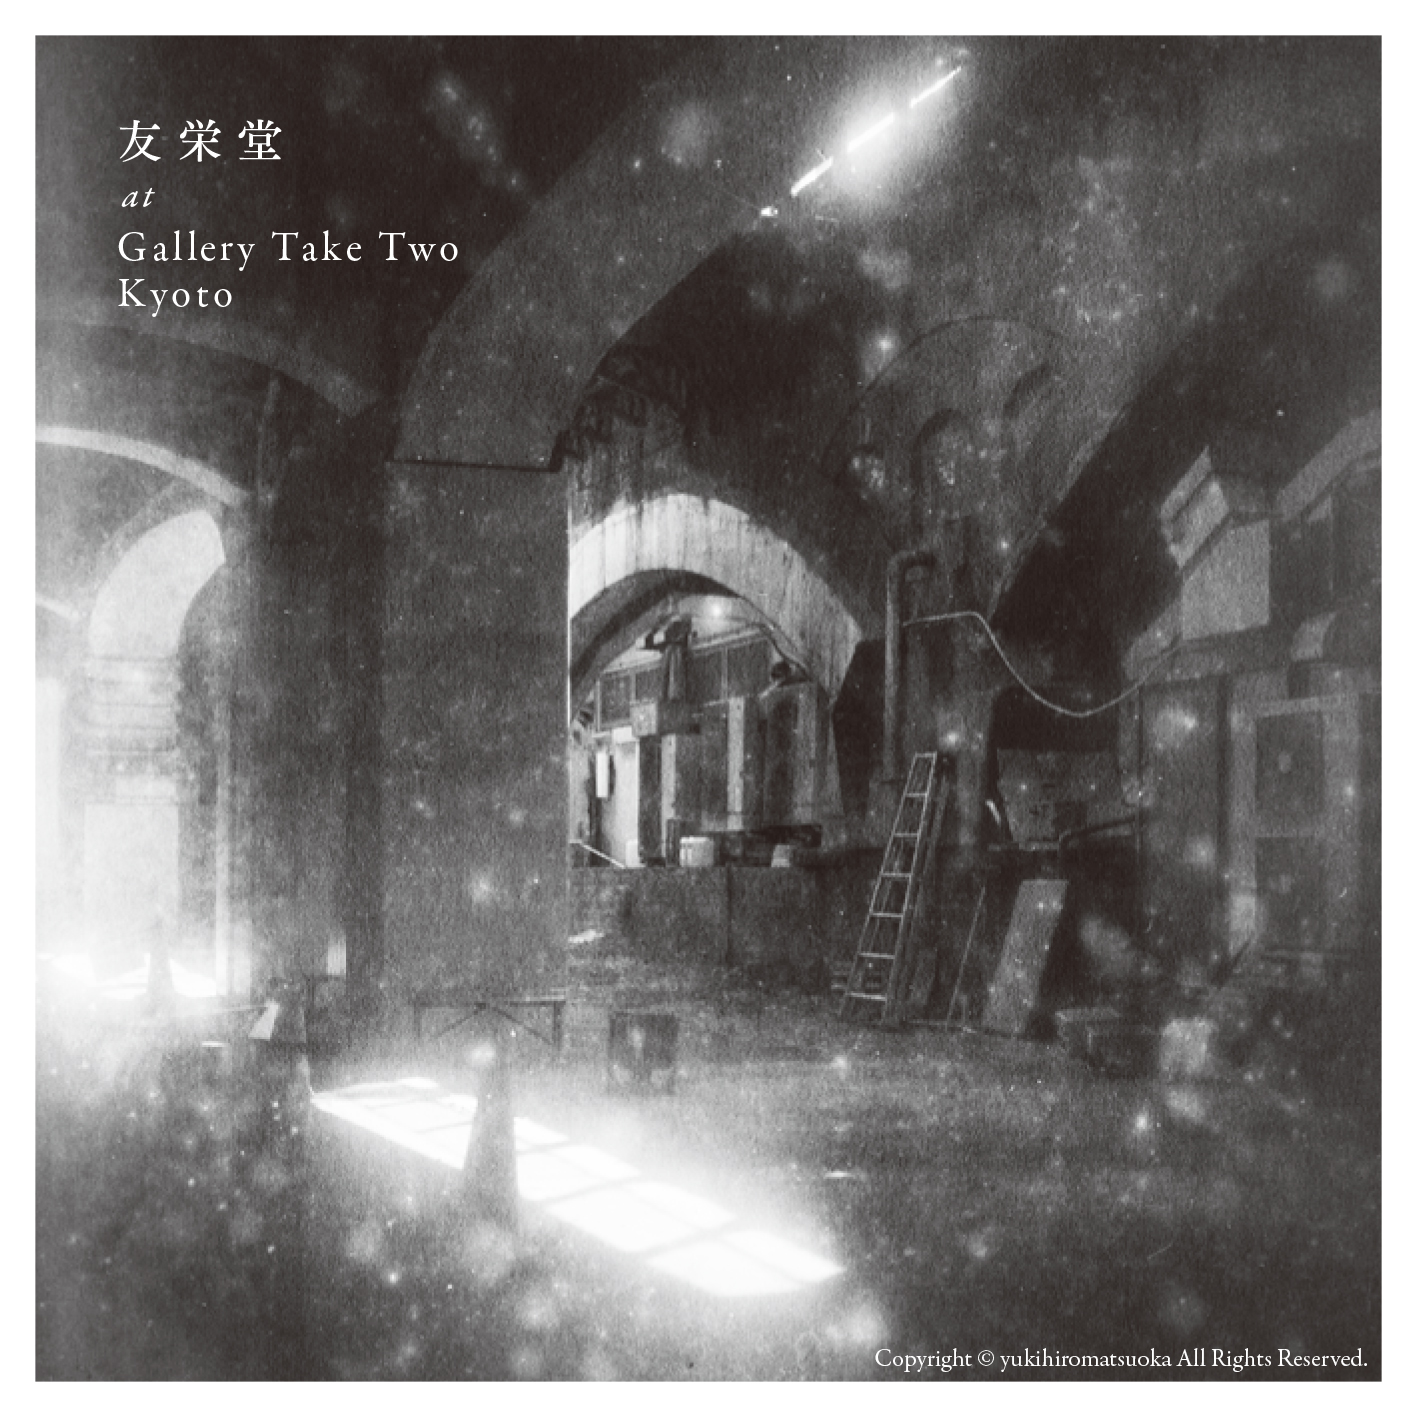 友栄堂 at Gallery Take Two Kyoto